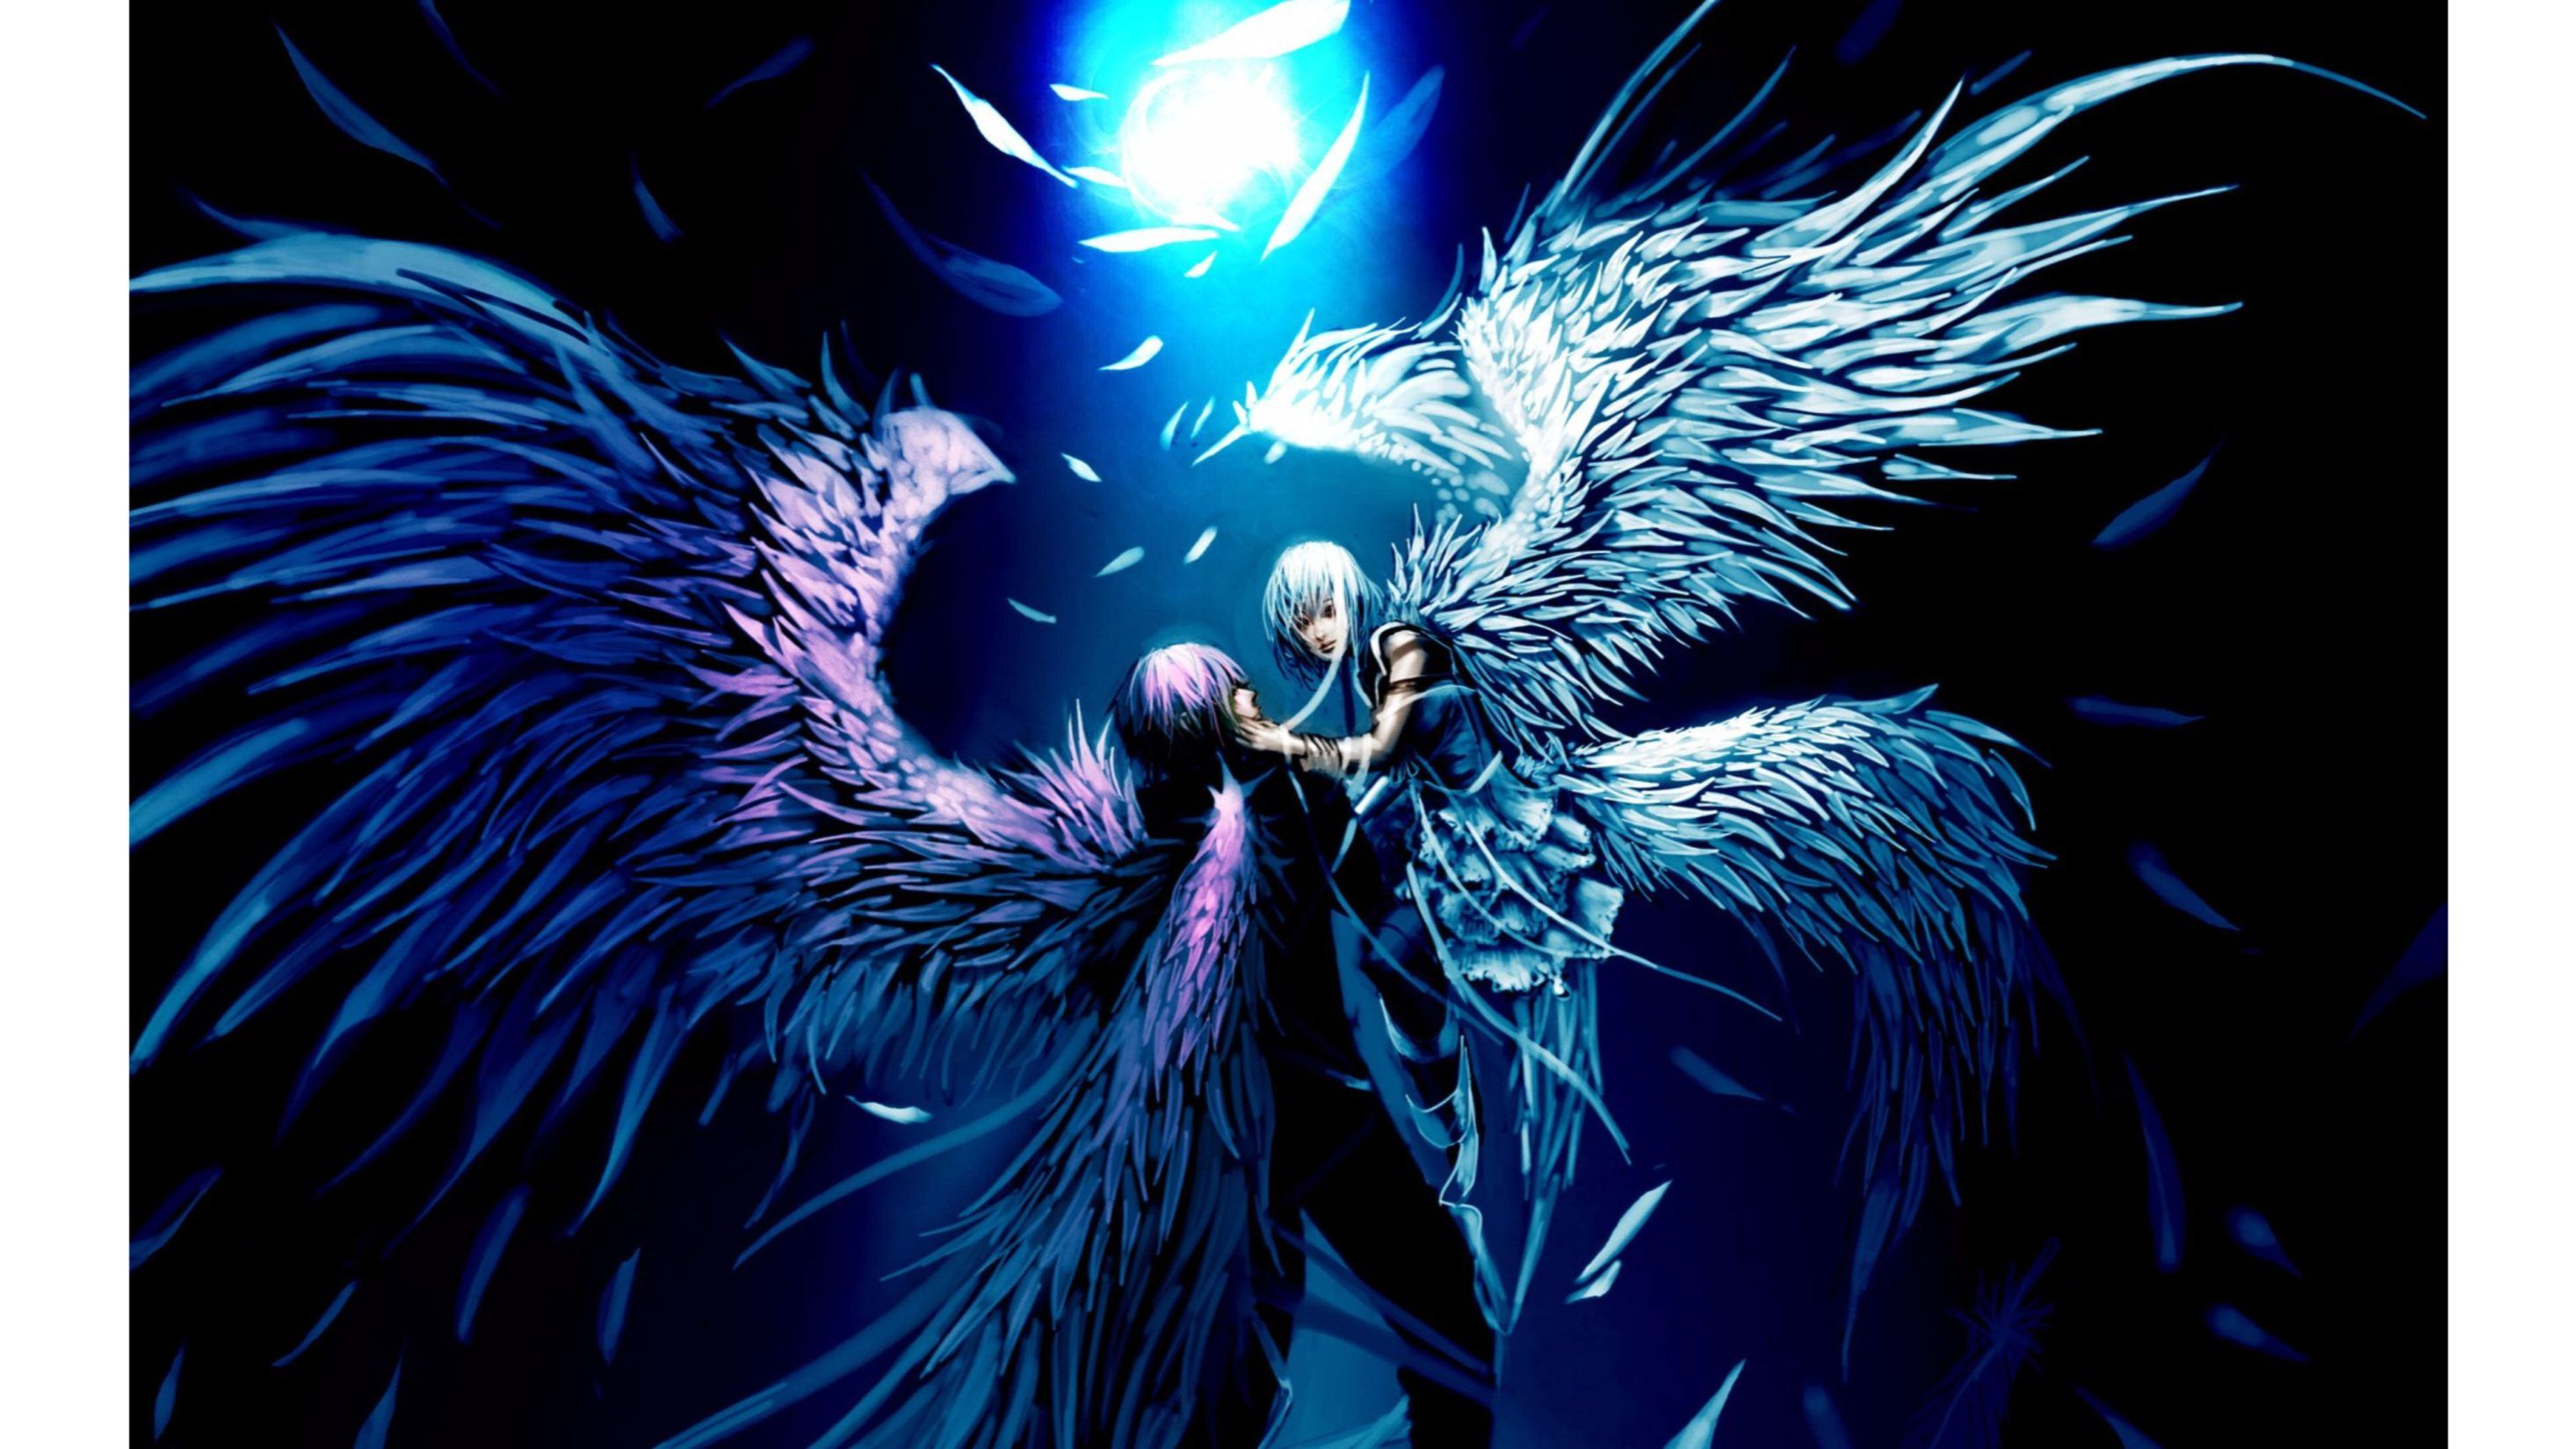 Fallen Angel Anime Wallpapers Top Free Fallen Angel Anime